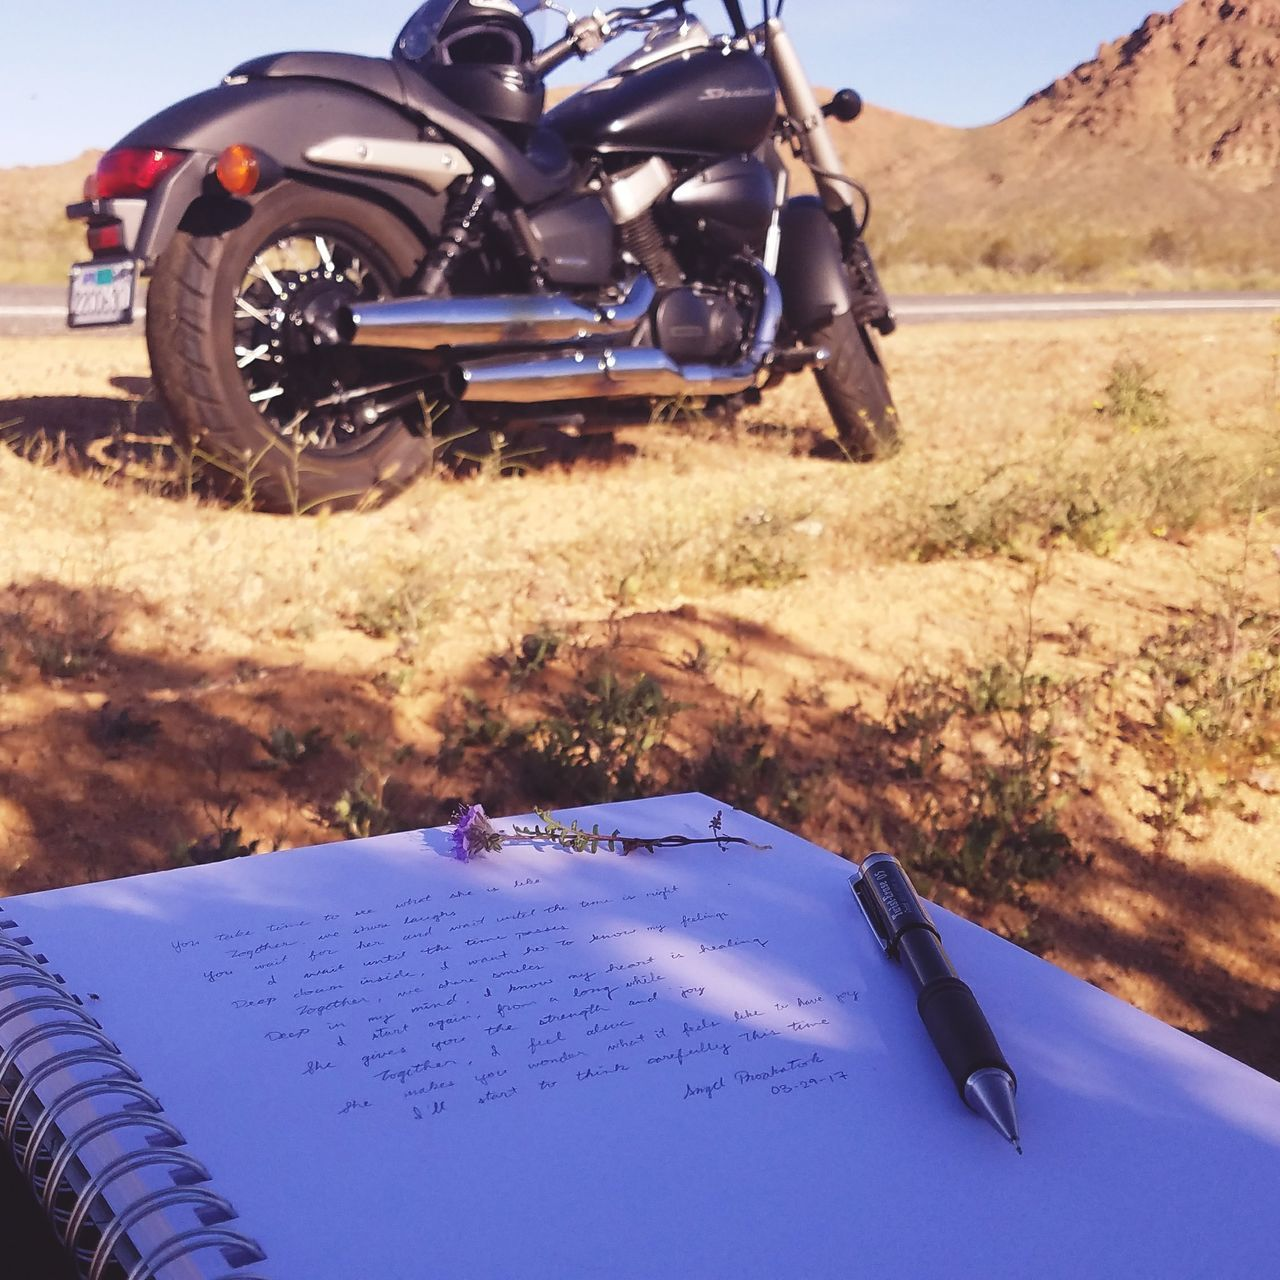 Outdoors Day Grass Nature Driving Nature Highway Barstow Barstowfwy Barstow, Ca Travel The Way Forward Poetry Poem Writing Flower Purple Purple Flower Motorcycle Motorcycle Trip Motorcycle Photography Motorcycle Helmet Honda HondaShadow